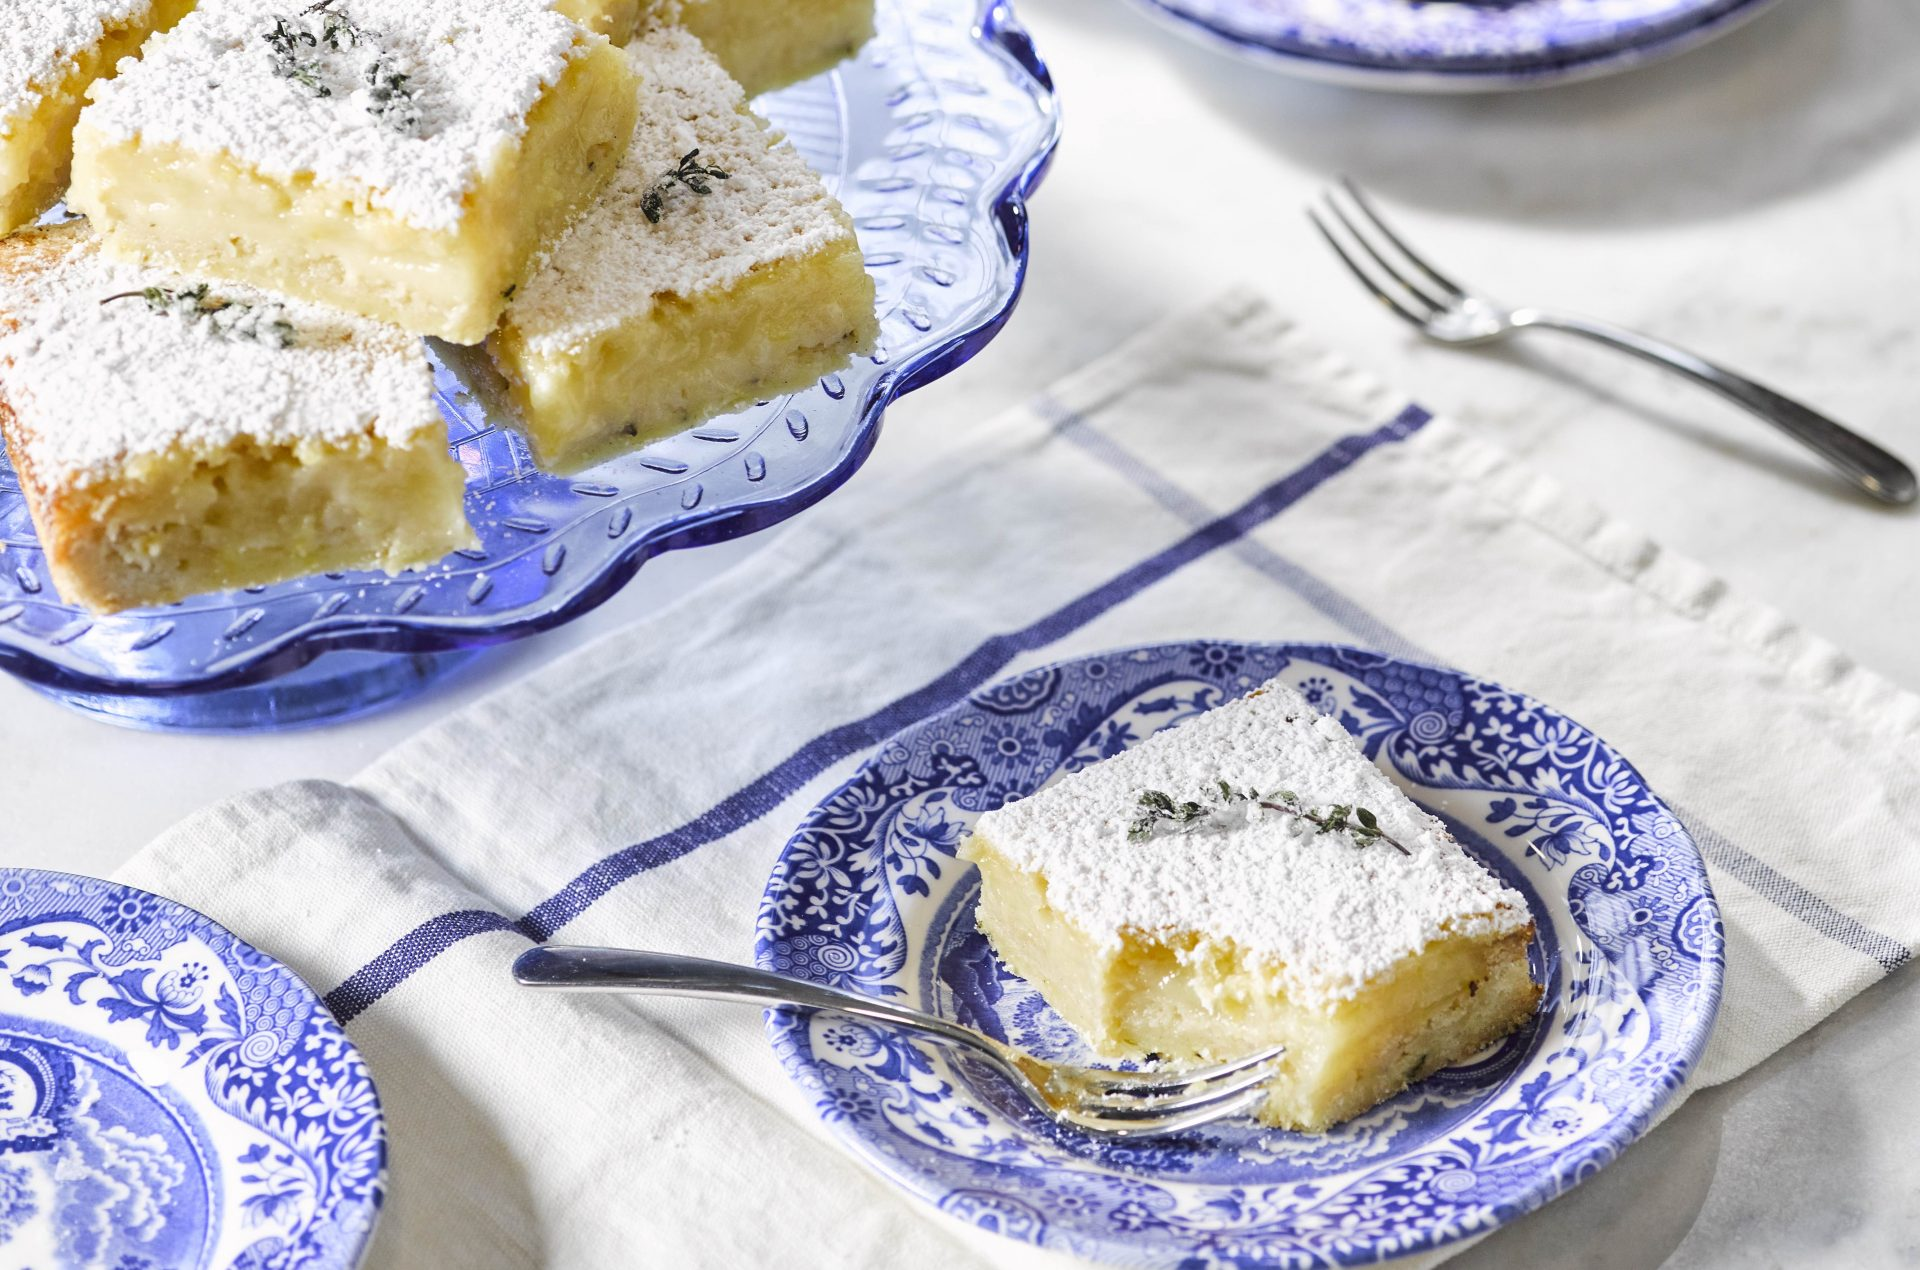 Try these irresistible buttery lemon and thyme shortbread squares perfect with a cuppa